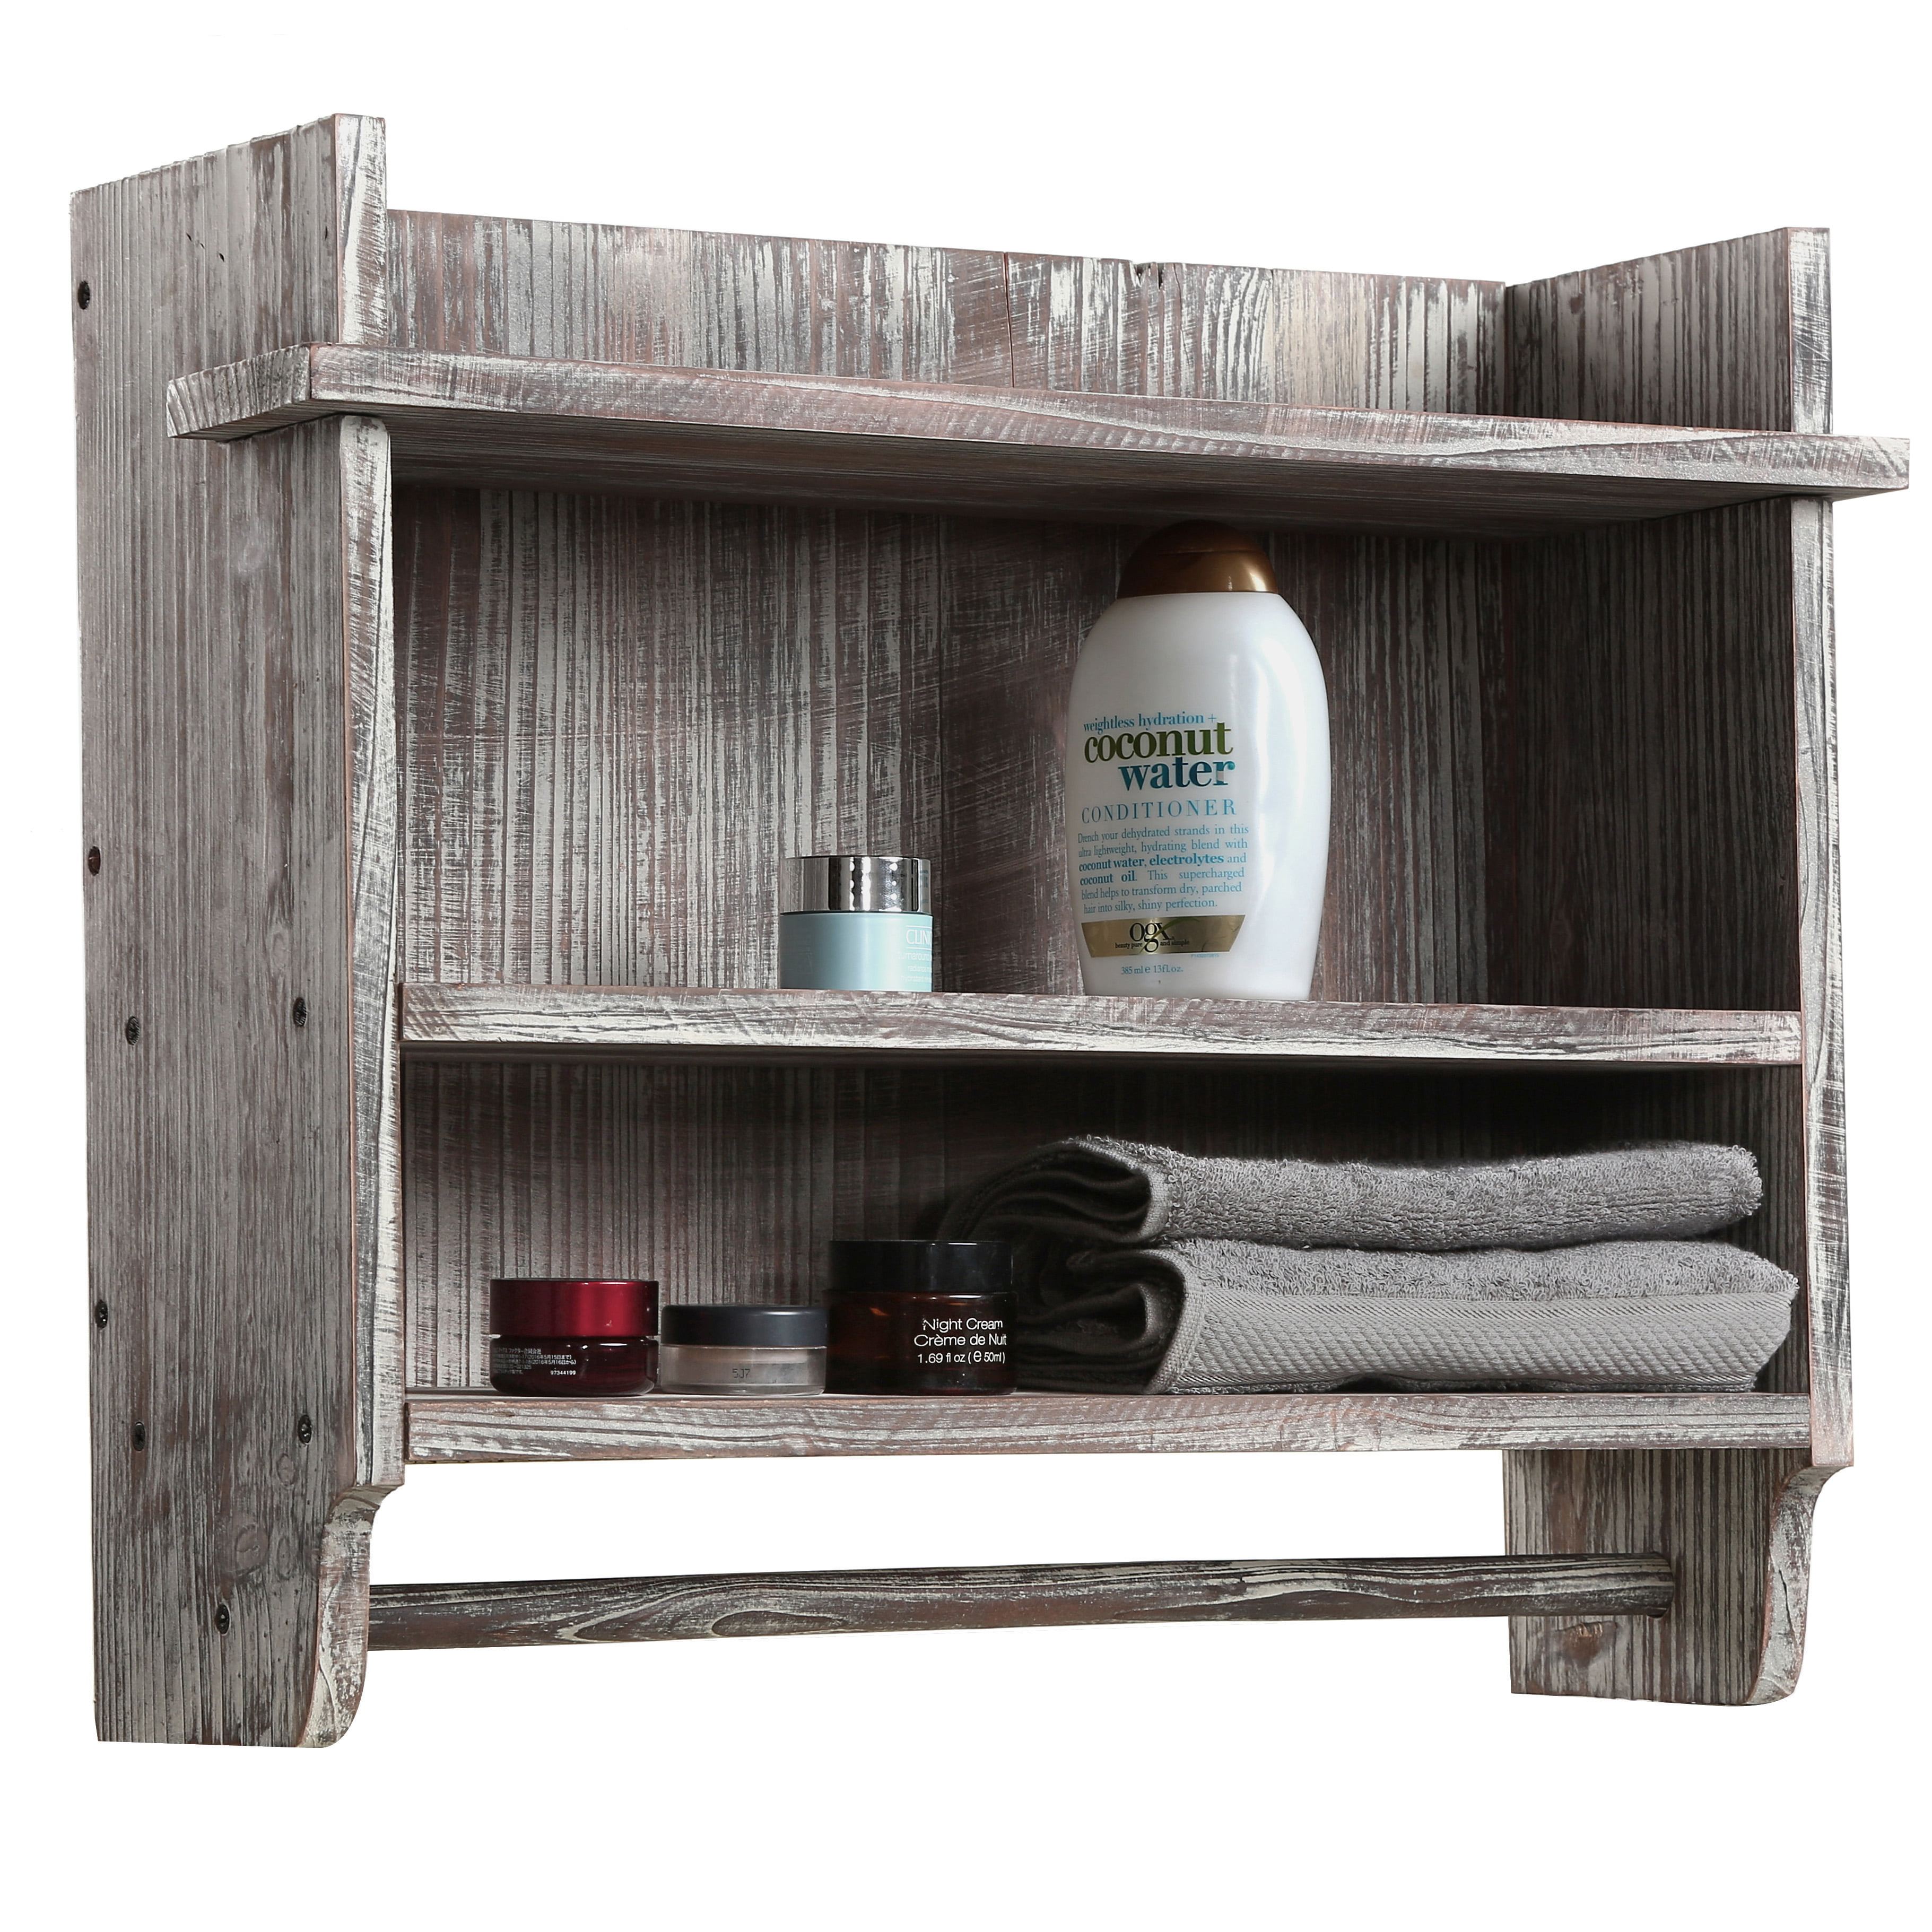 Torched Wood Wall Mounted Bathroom Organizer Rack With 3 Shelves And Hanging Towel Bar